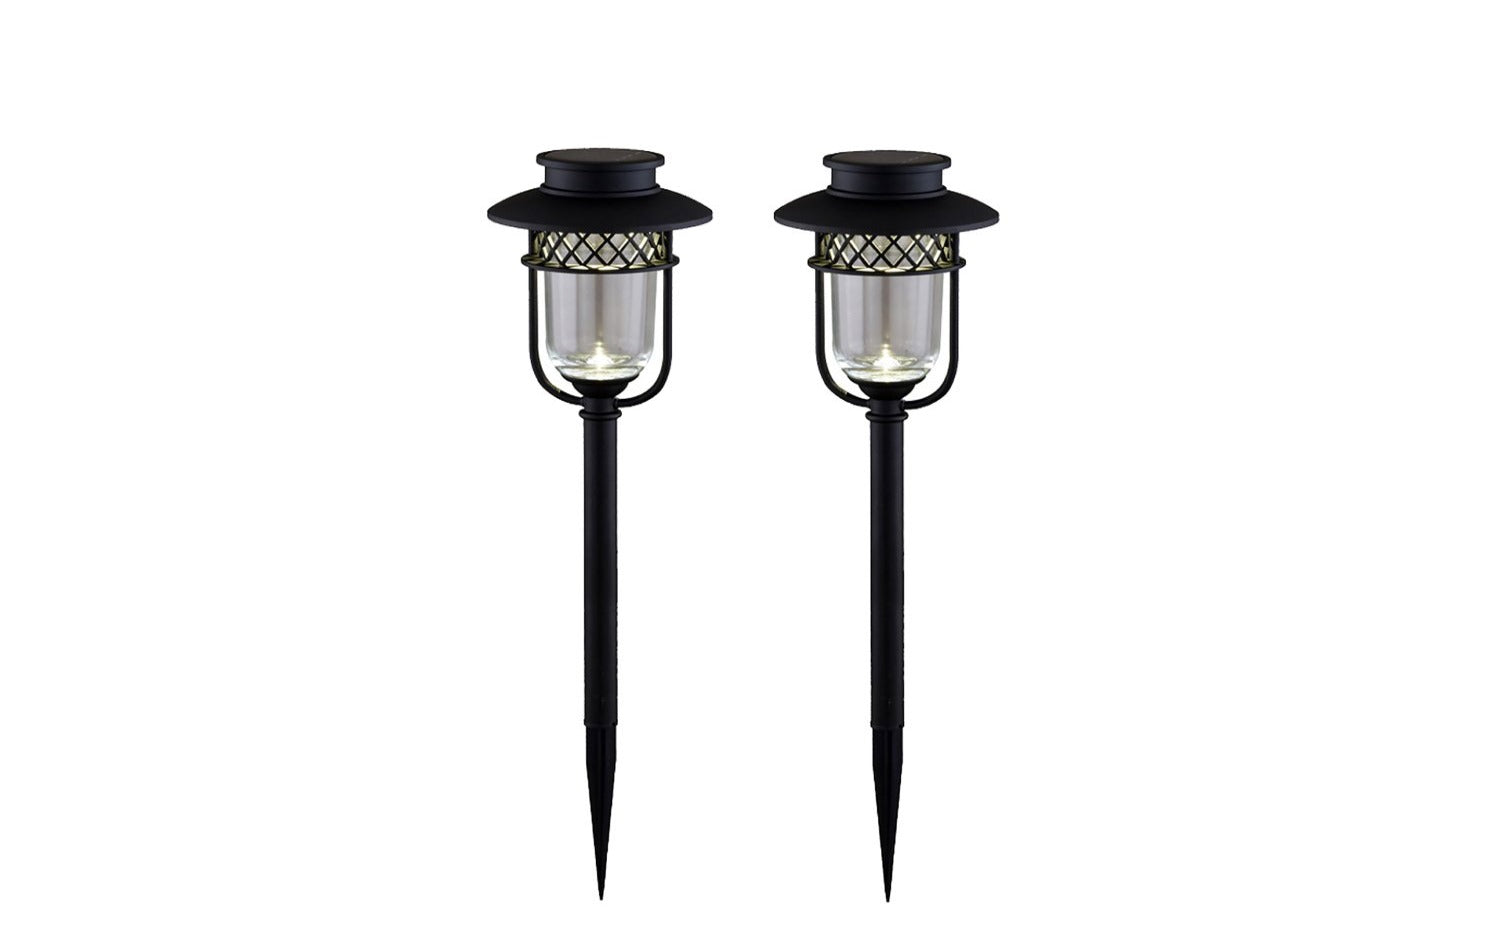 BLACK STAINLESS STEEL LANDSCAPE, PATH & GARDEN LIGHT - 2 PK